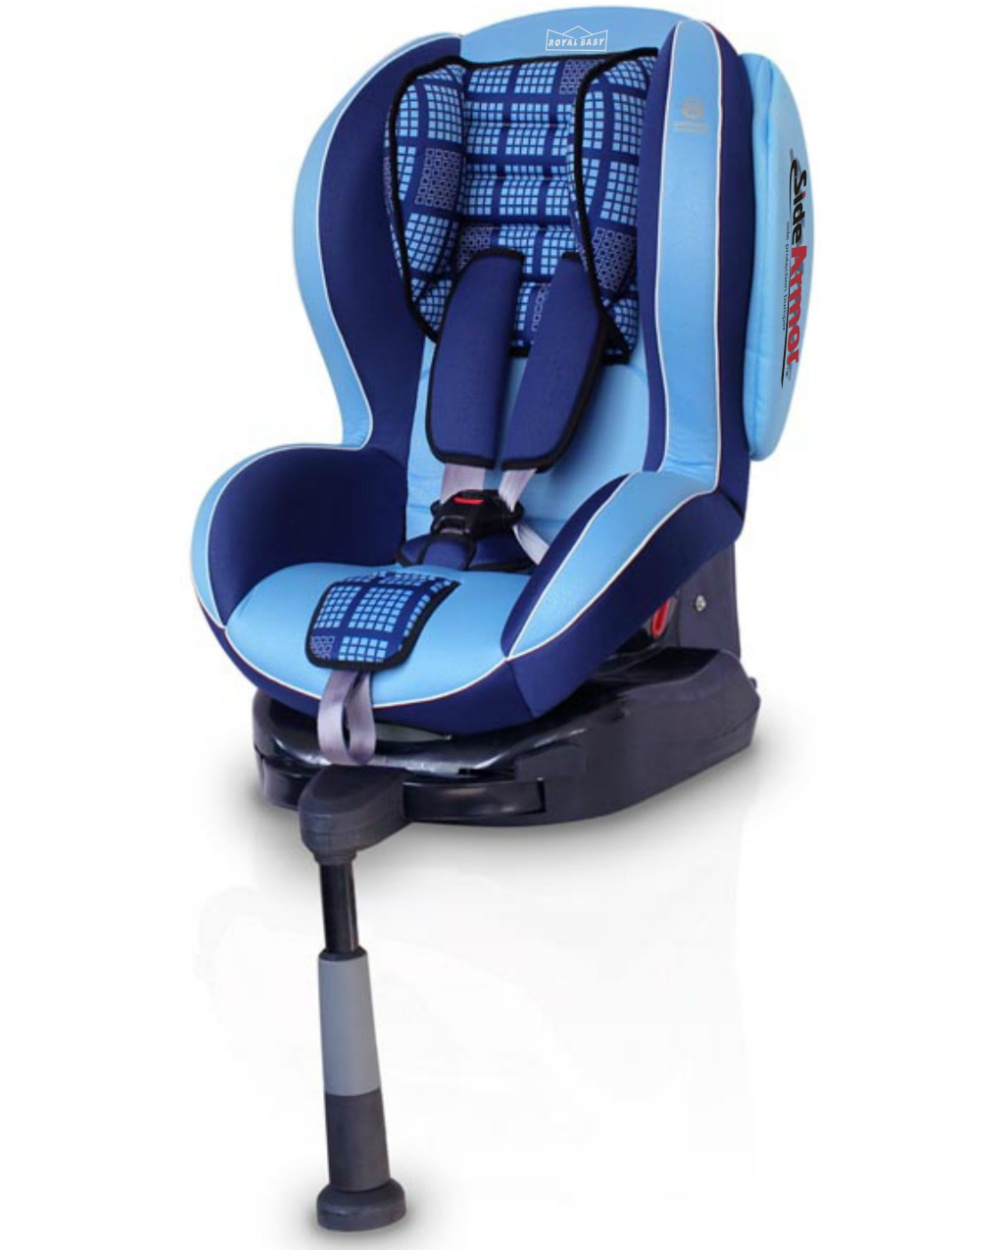 Автокресло Welldon Royal Baby Isofix (Blue) автокресло welldon royal baby side armor